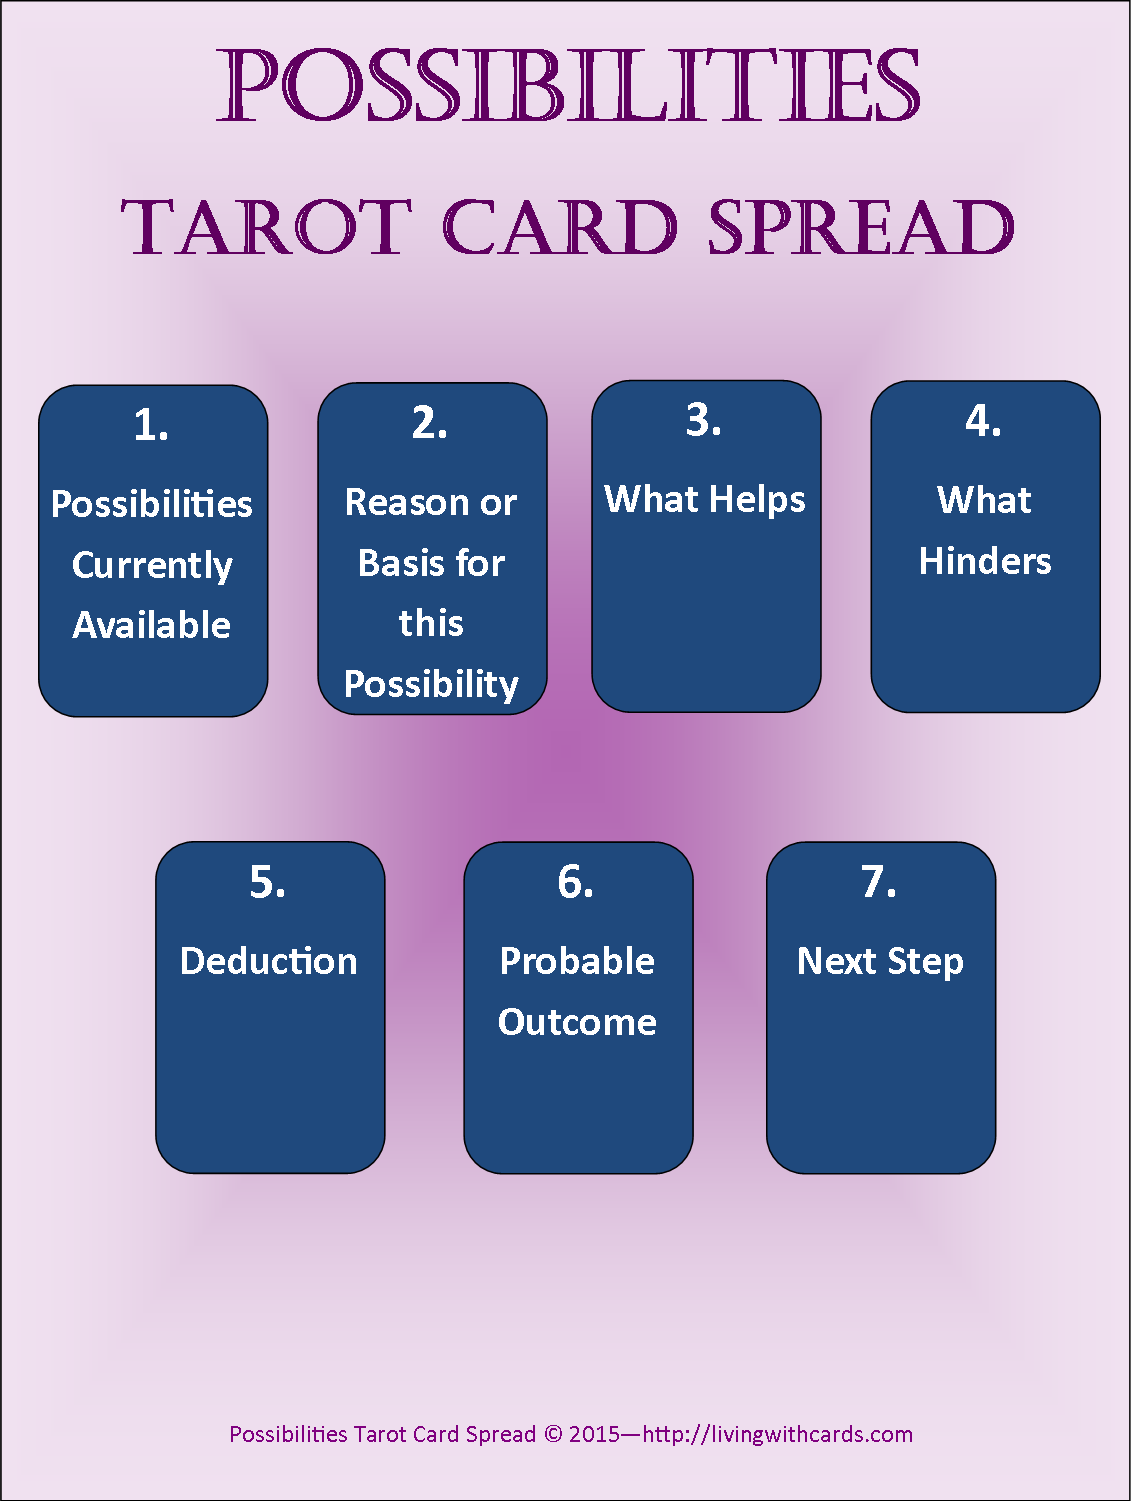 Possibilities Tarot Card Spread